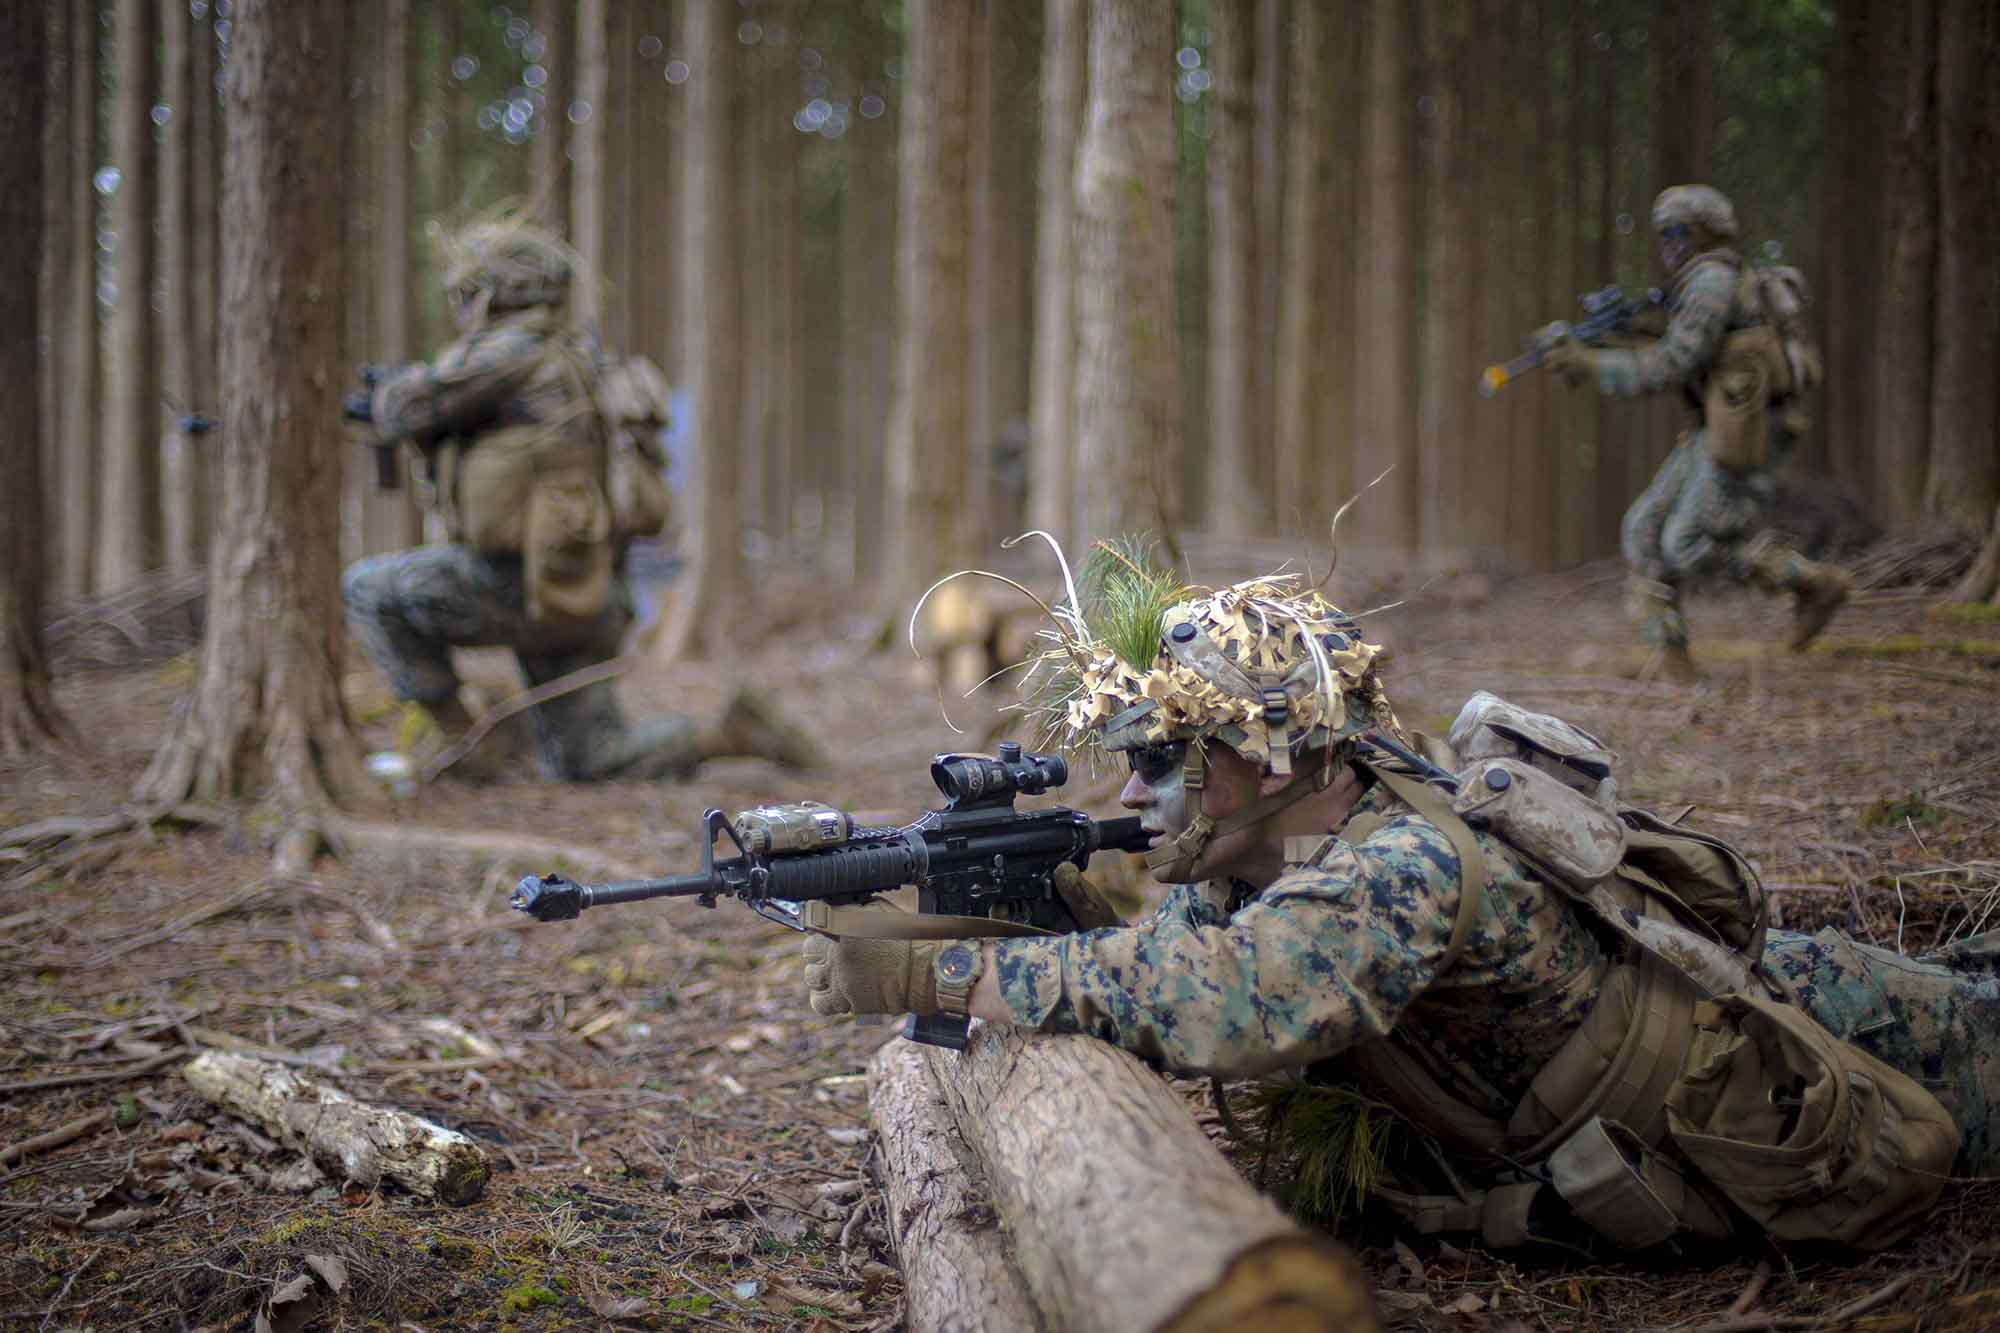 Marines advance during a force-on-force exercise at Combined Arms Training Center Camp Fuji, Japan, March 4, 2021. (Cpl. Cody Rowe/Marine Corps)